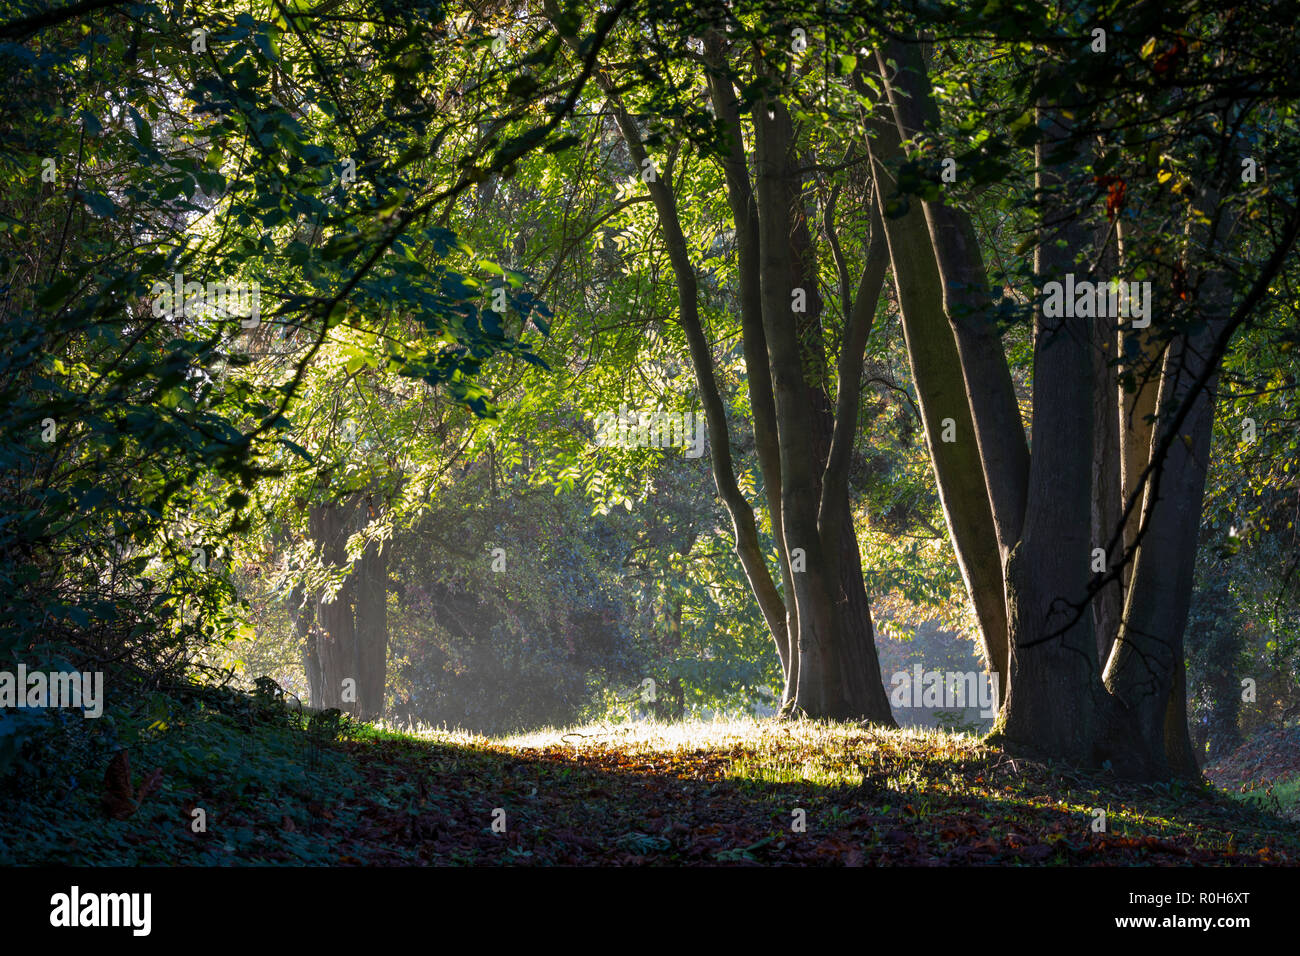 Line of backlit beech trees in morning autumn sunlight, Cotswolds, Gloucestershire, England, United Kingdom, Europe Stock Photo